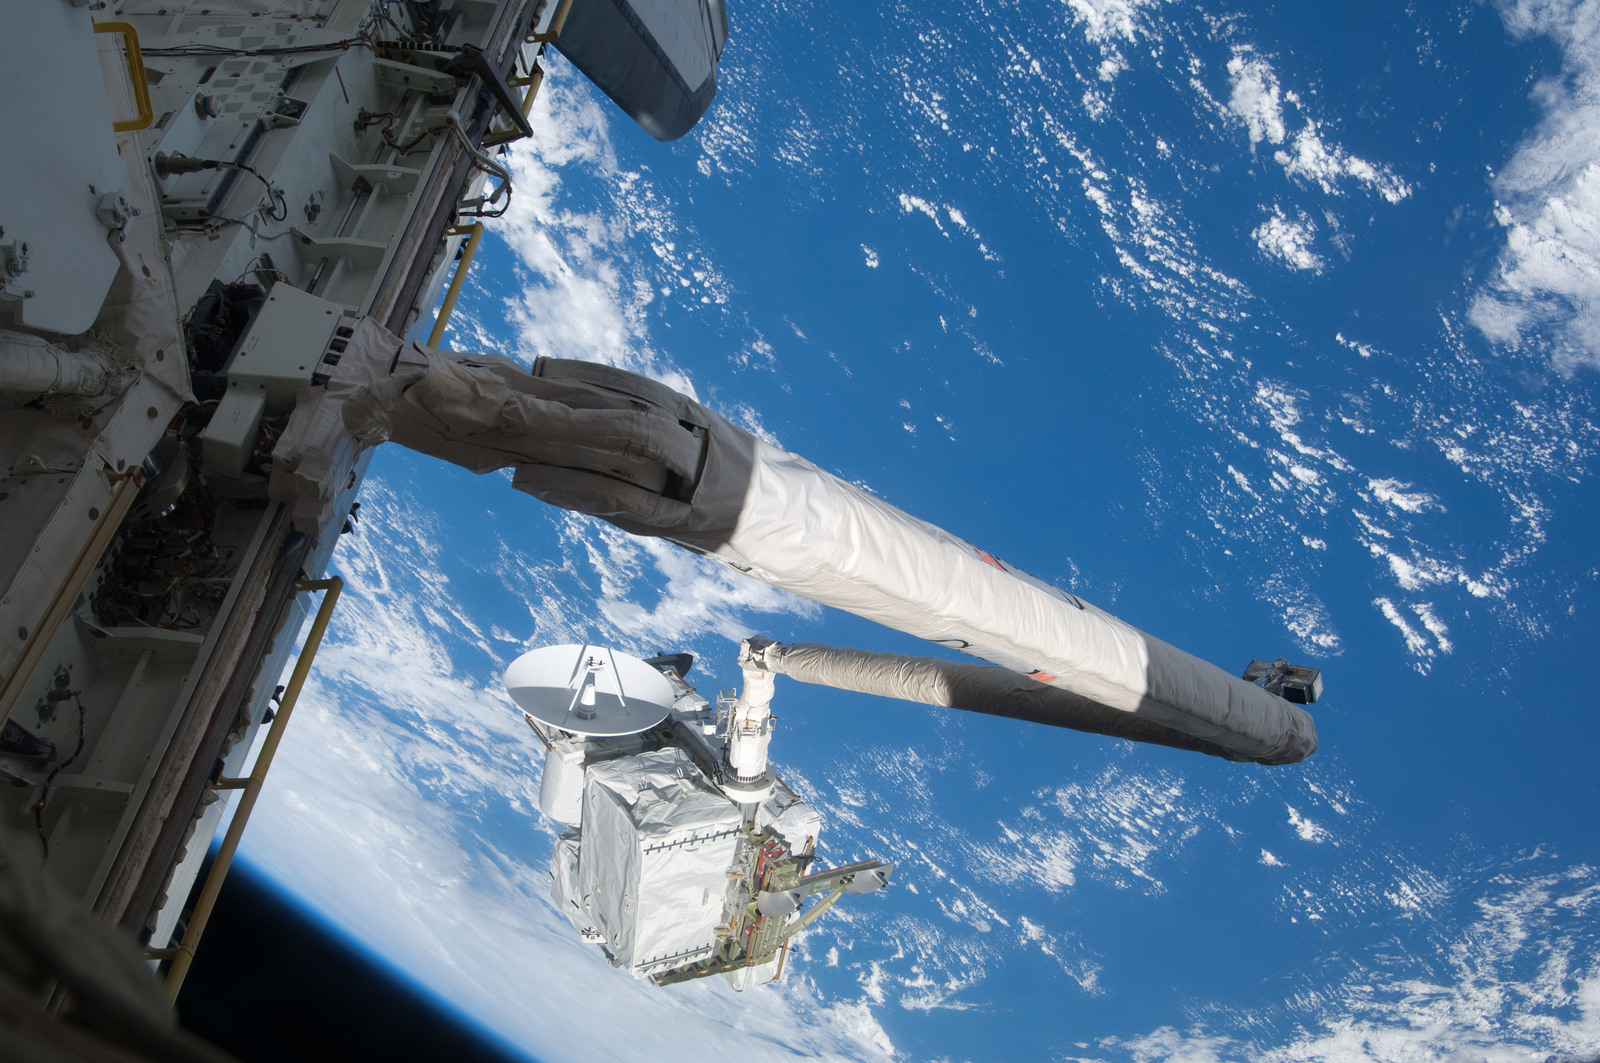 S127E006934 - STS-127 - SRMS maneuvers the ICC-VLD during STS-127 / Expedition 20 Joint Operations